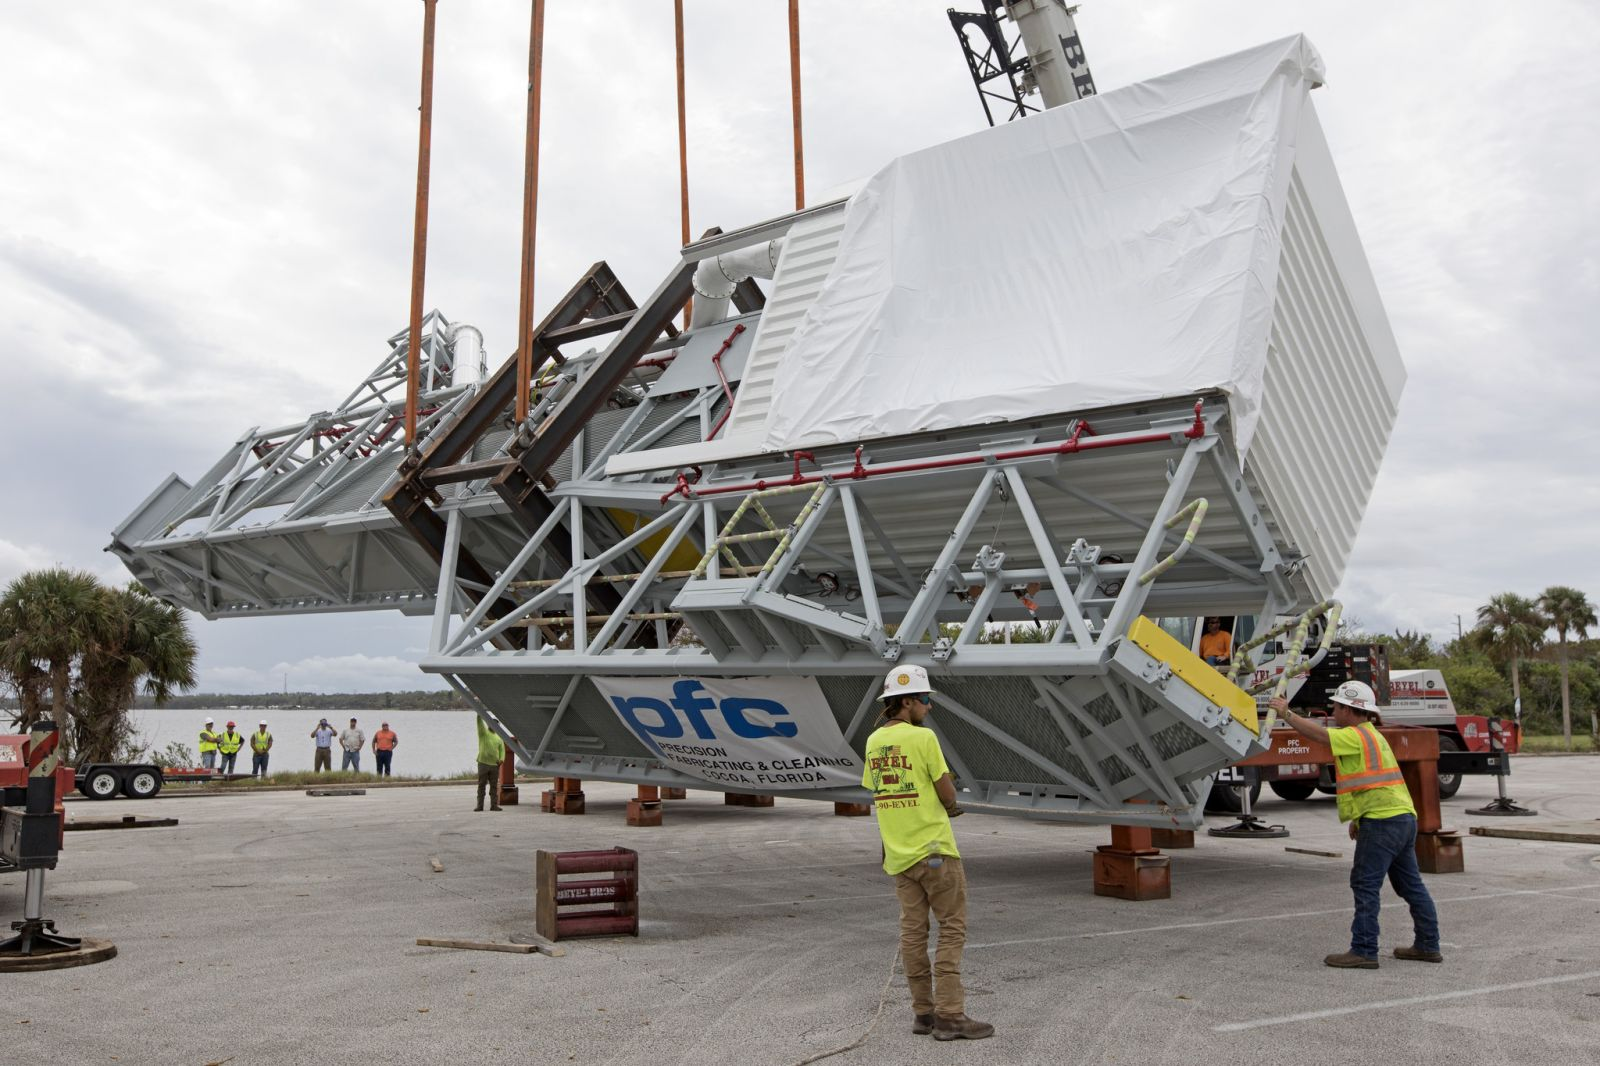 Workers help guide the Crew Access Arm onto a work stand after it arrives at NASA's Kennedy Space Center. Photo credit: NASA / Kim Shiflett